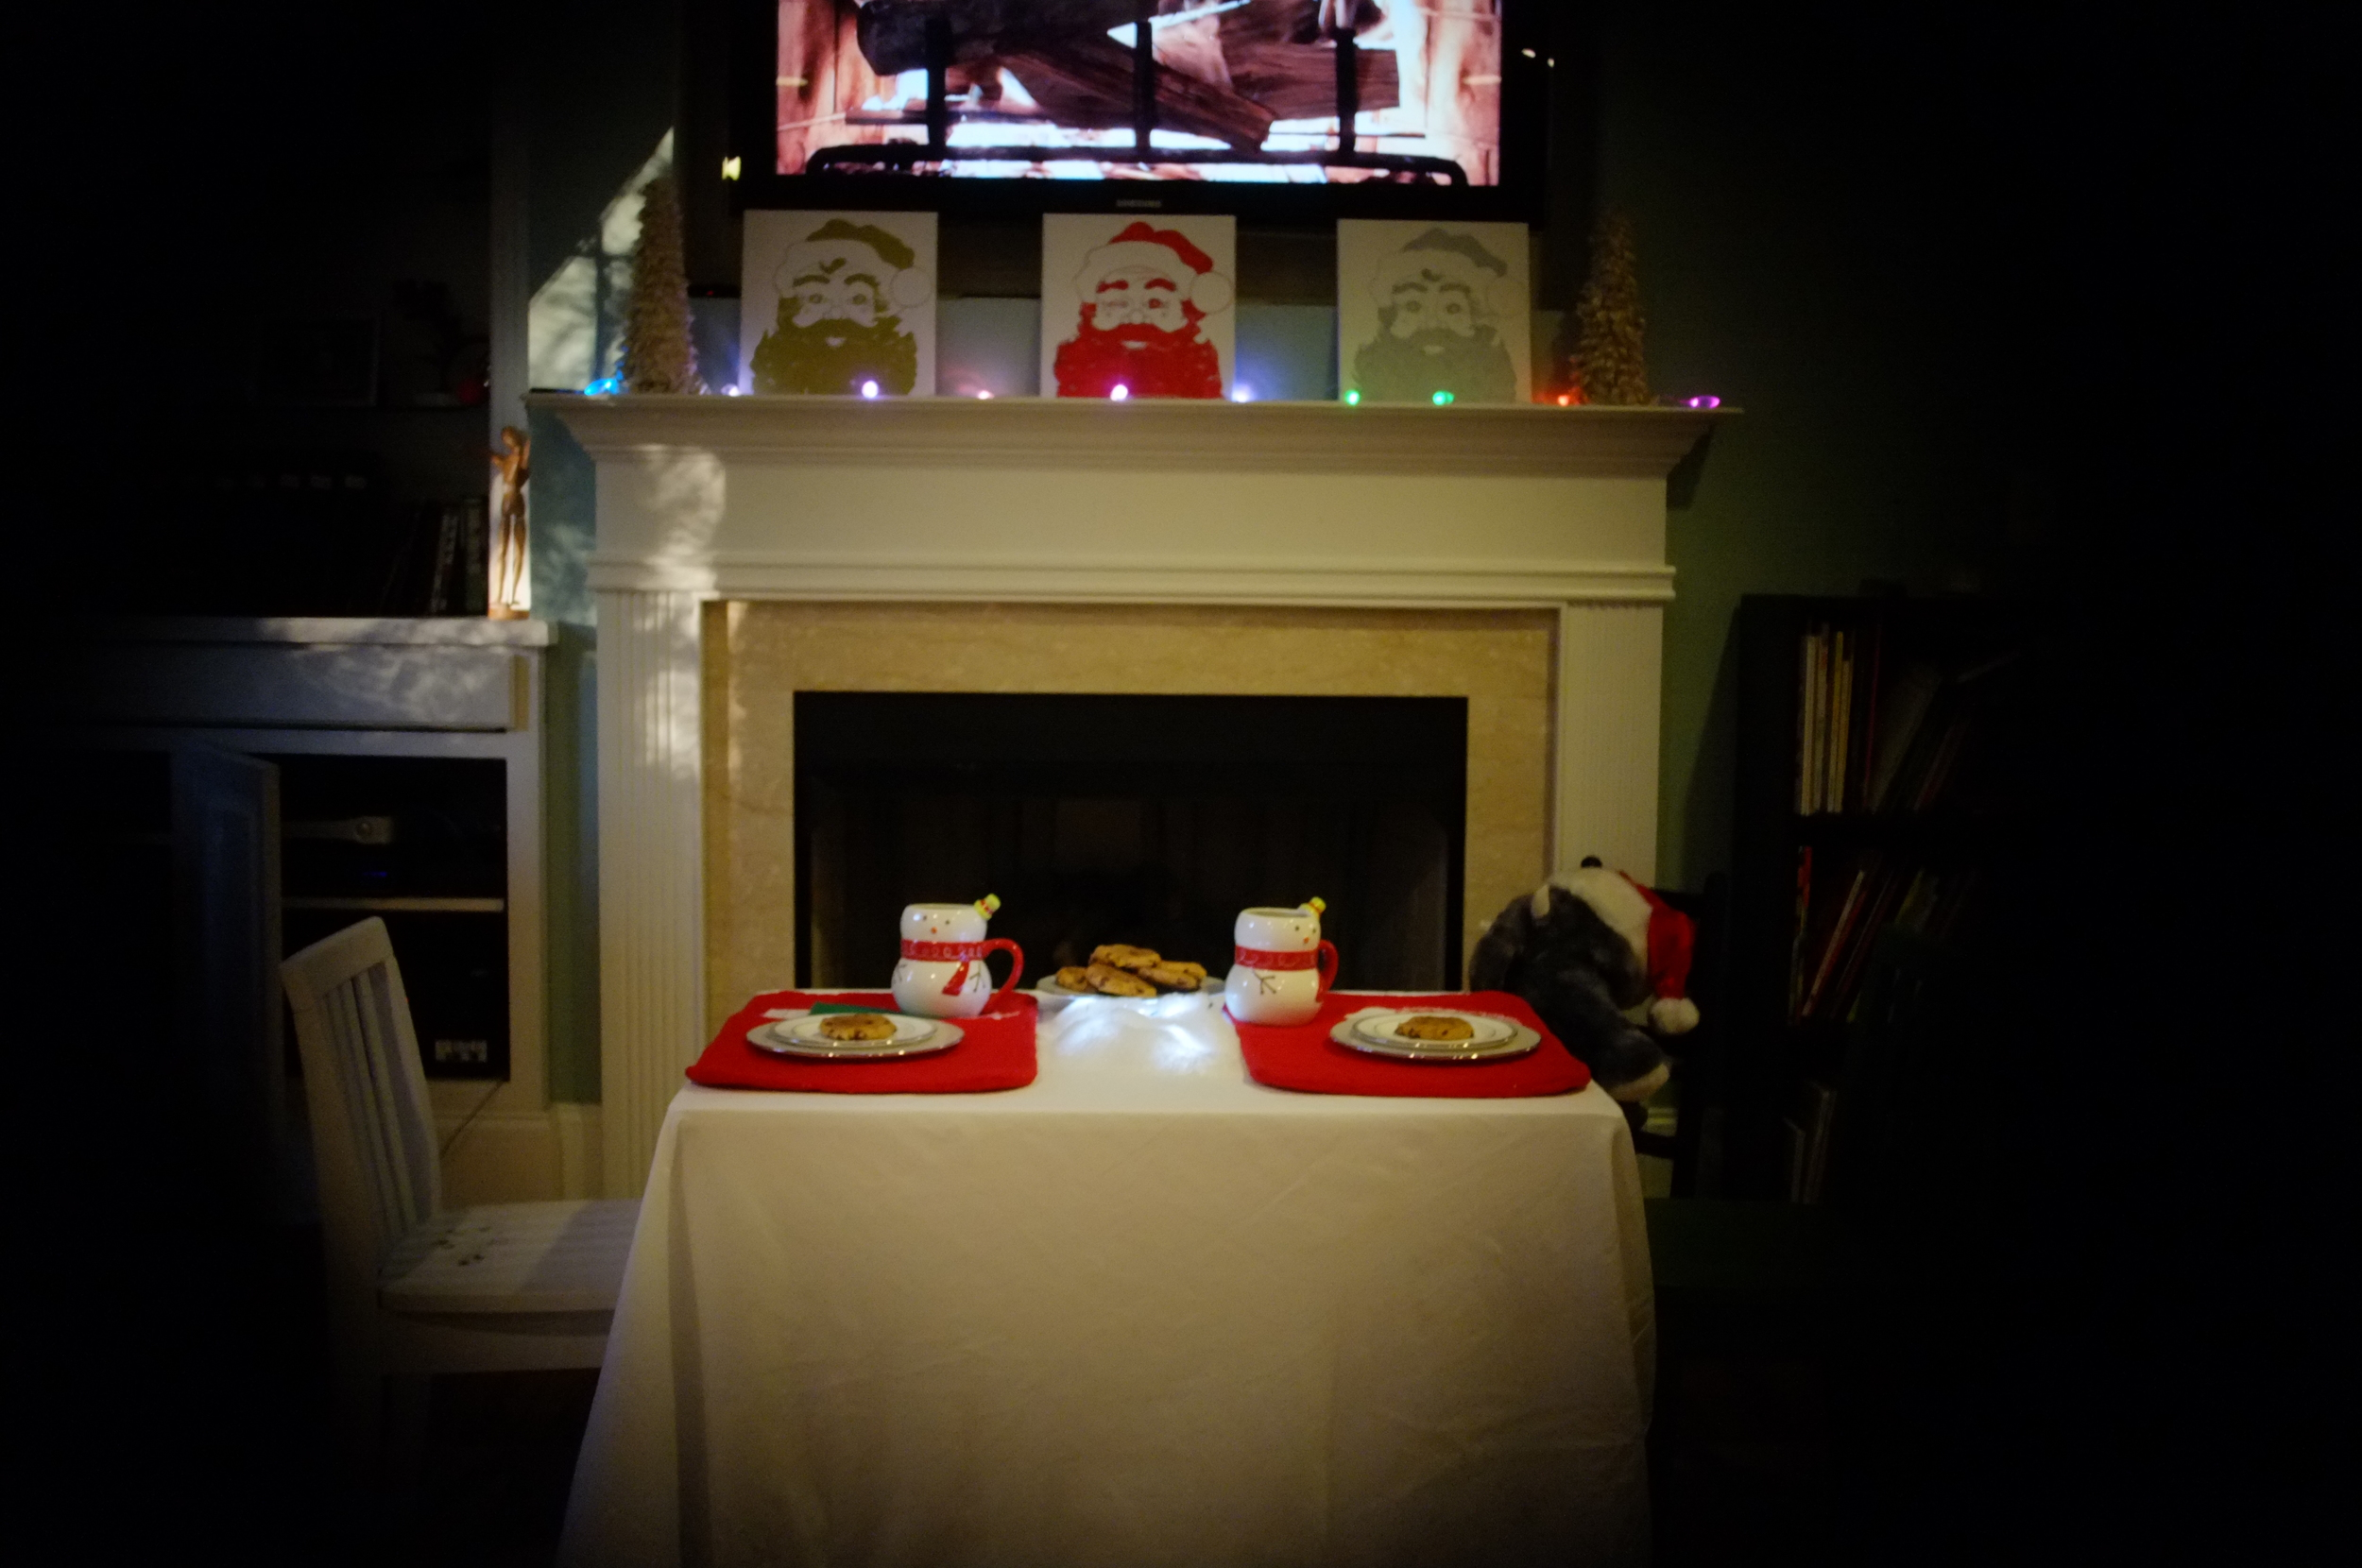 Xavier and India woke up to a Cookie & Cocoa Party invitation! After they put on their best party clothes (at 7 am), they headed downstairs and were greeted by this scene - a table set for two, complete with chocolate chip cookies and hot chocolate. What a way to wake up.